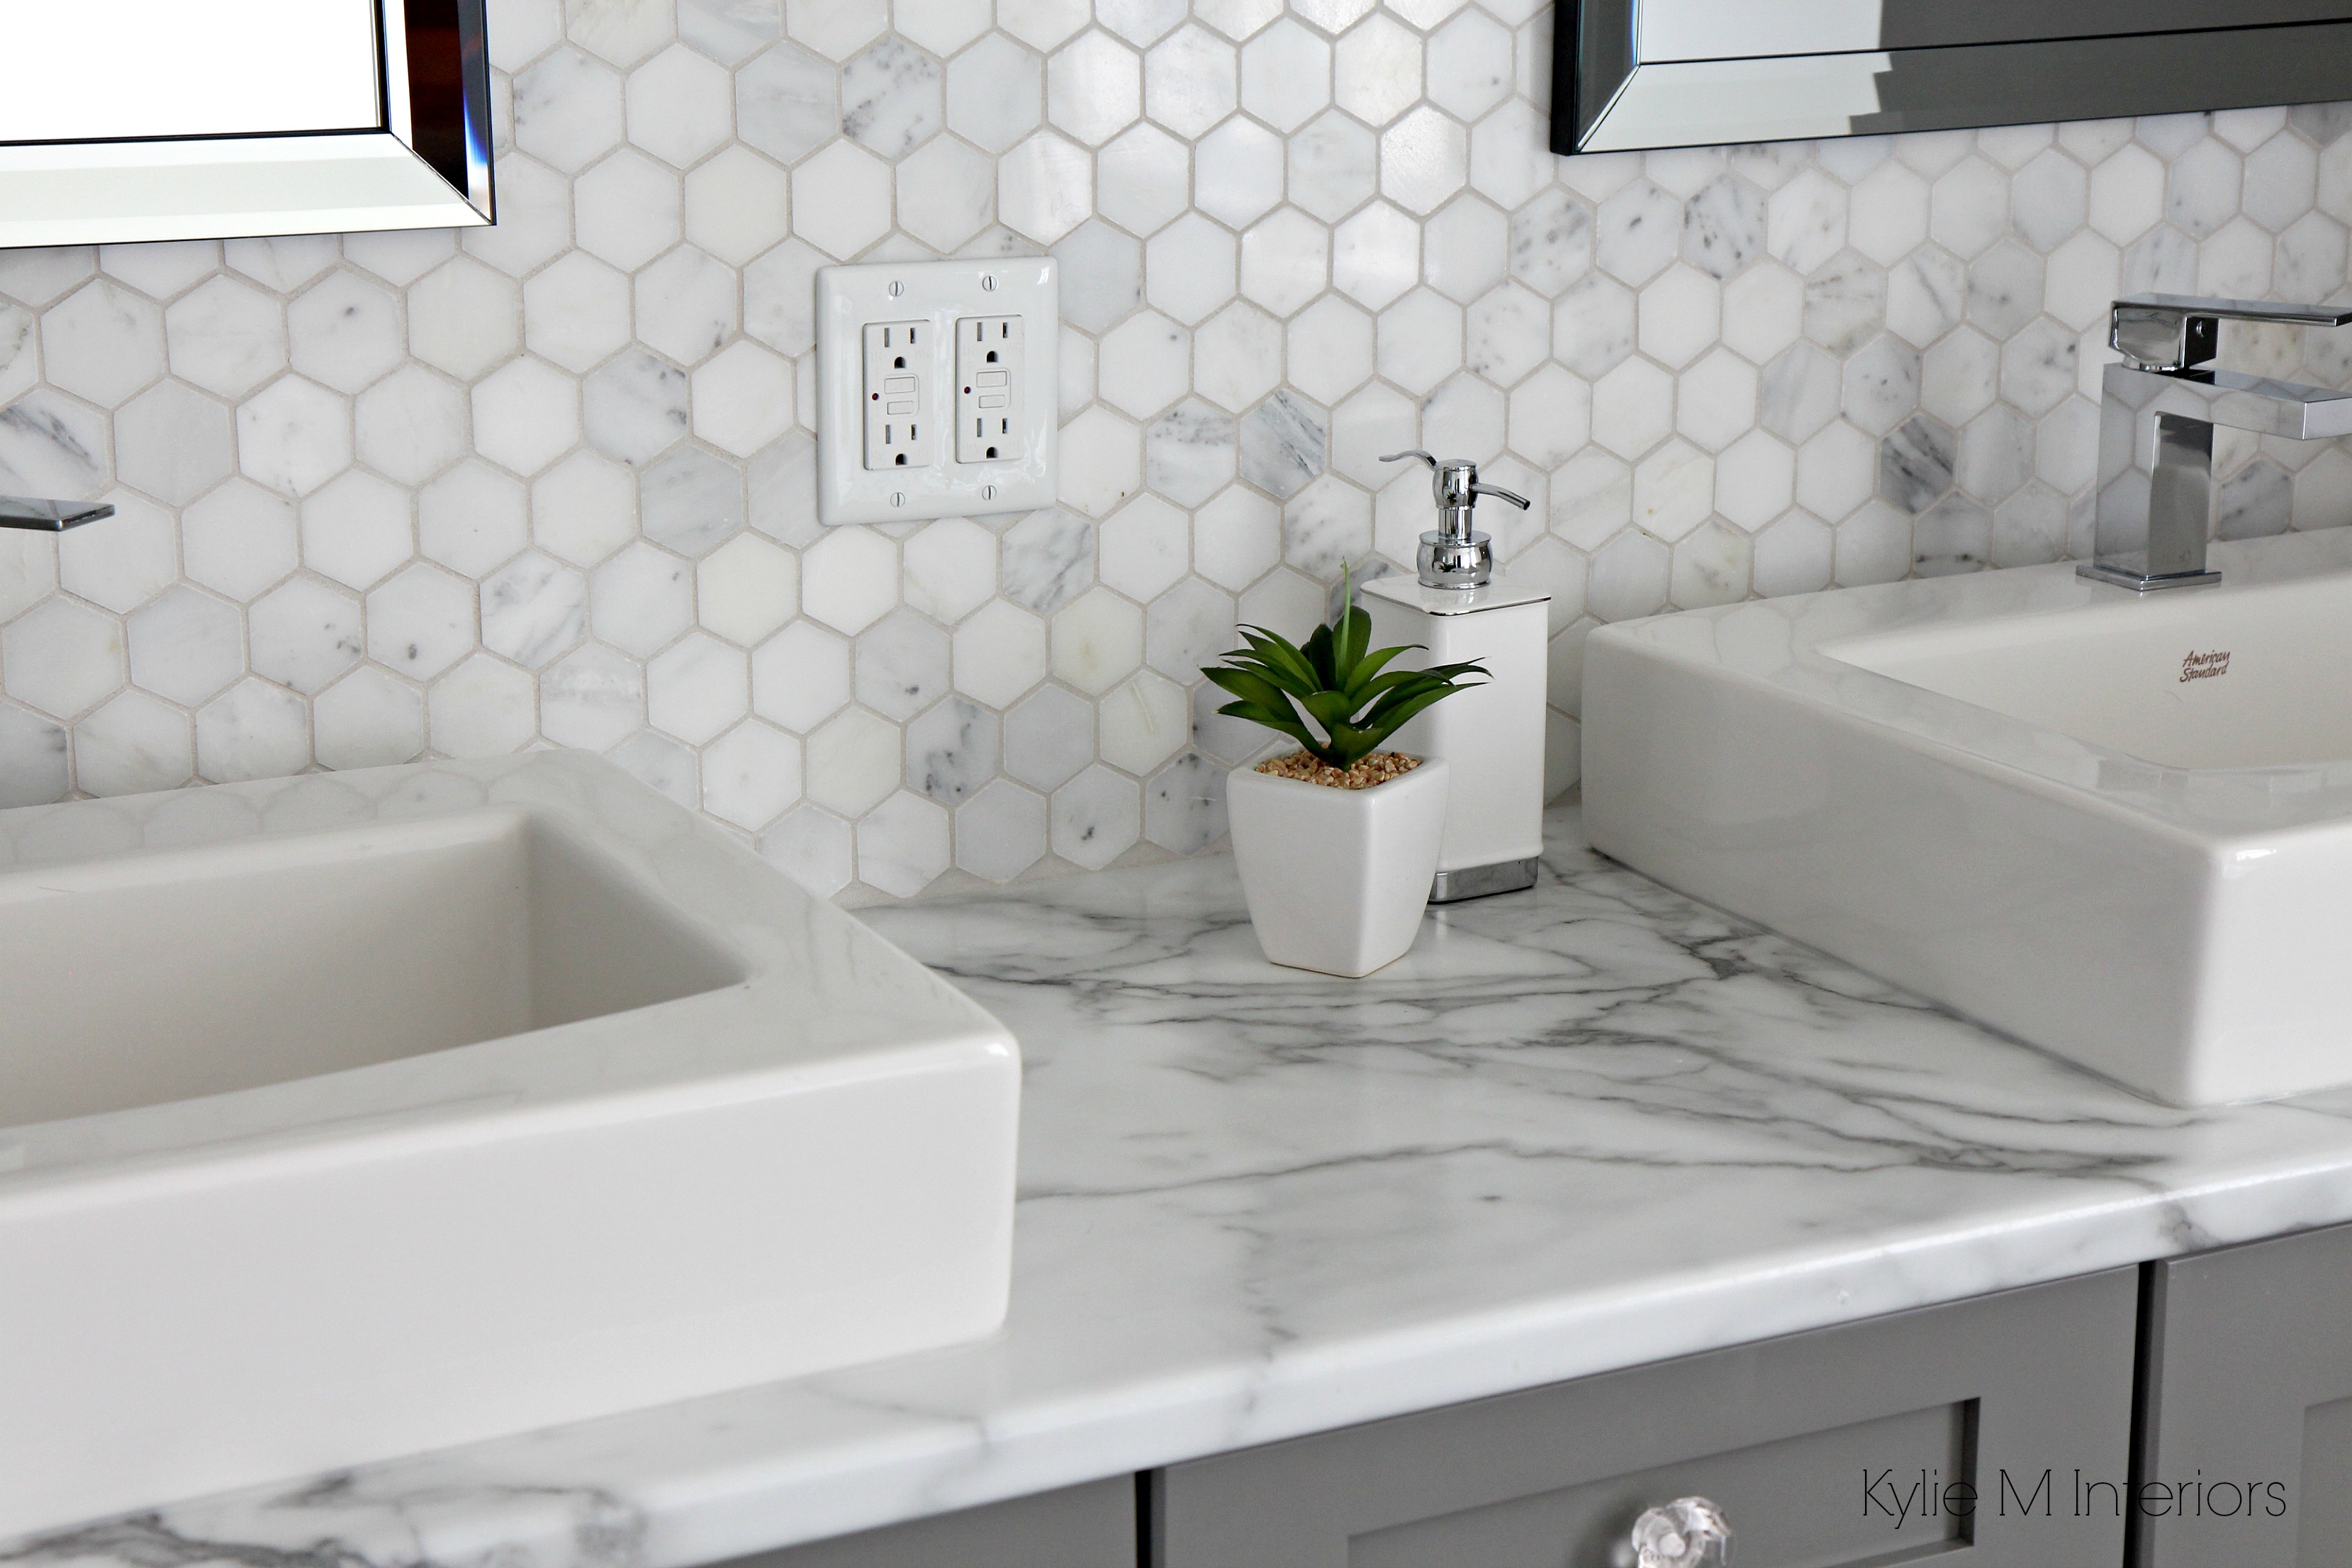 Charmant Pros And Cons Of Laminate Countertops   Evoke Custom Builders   Luxury  Builder And Kitchen Remodel Denver